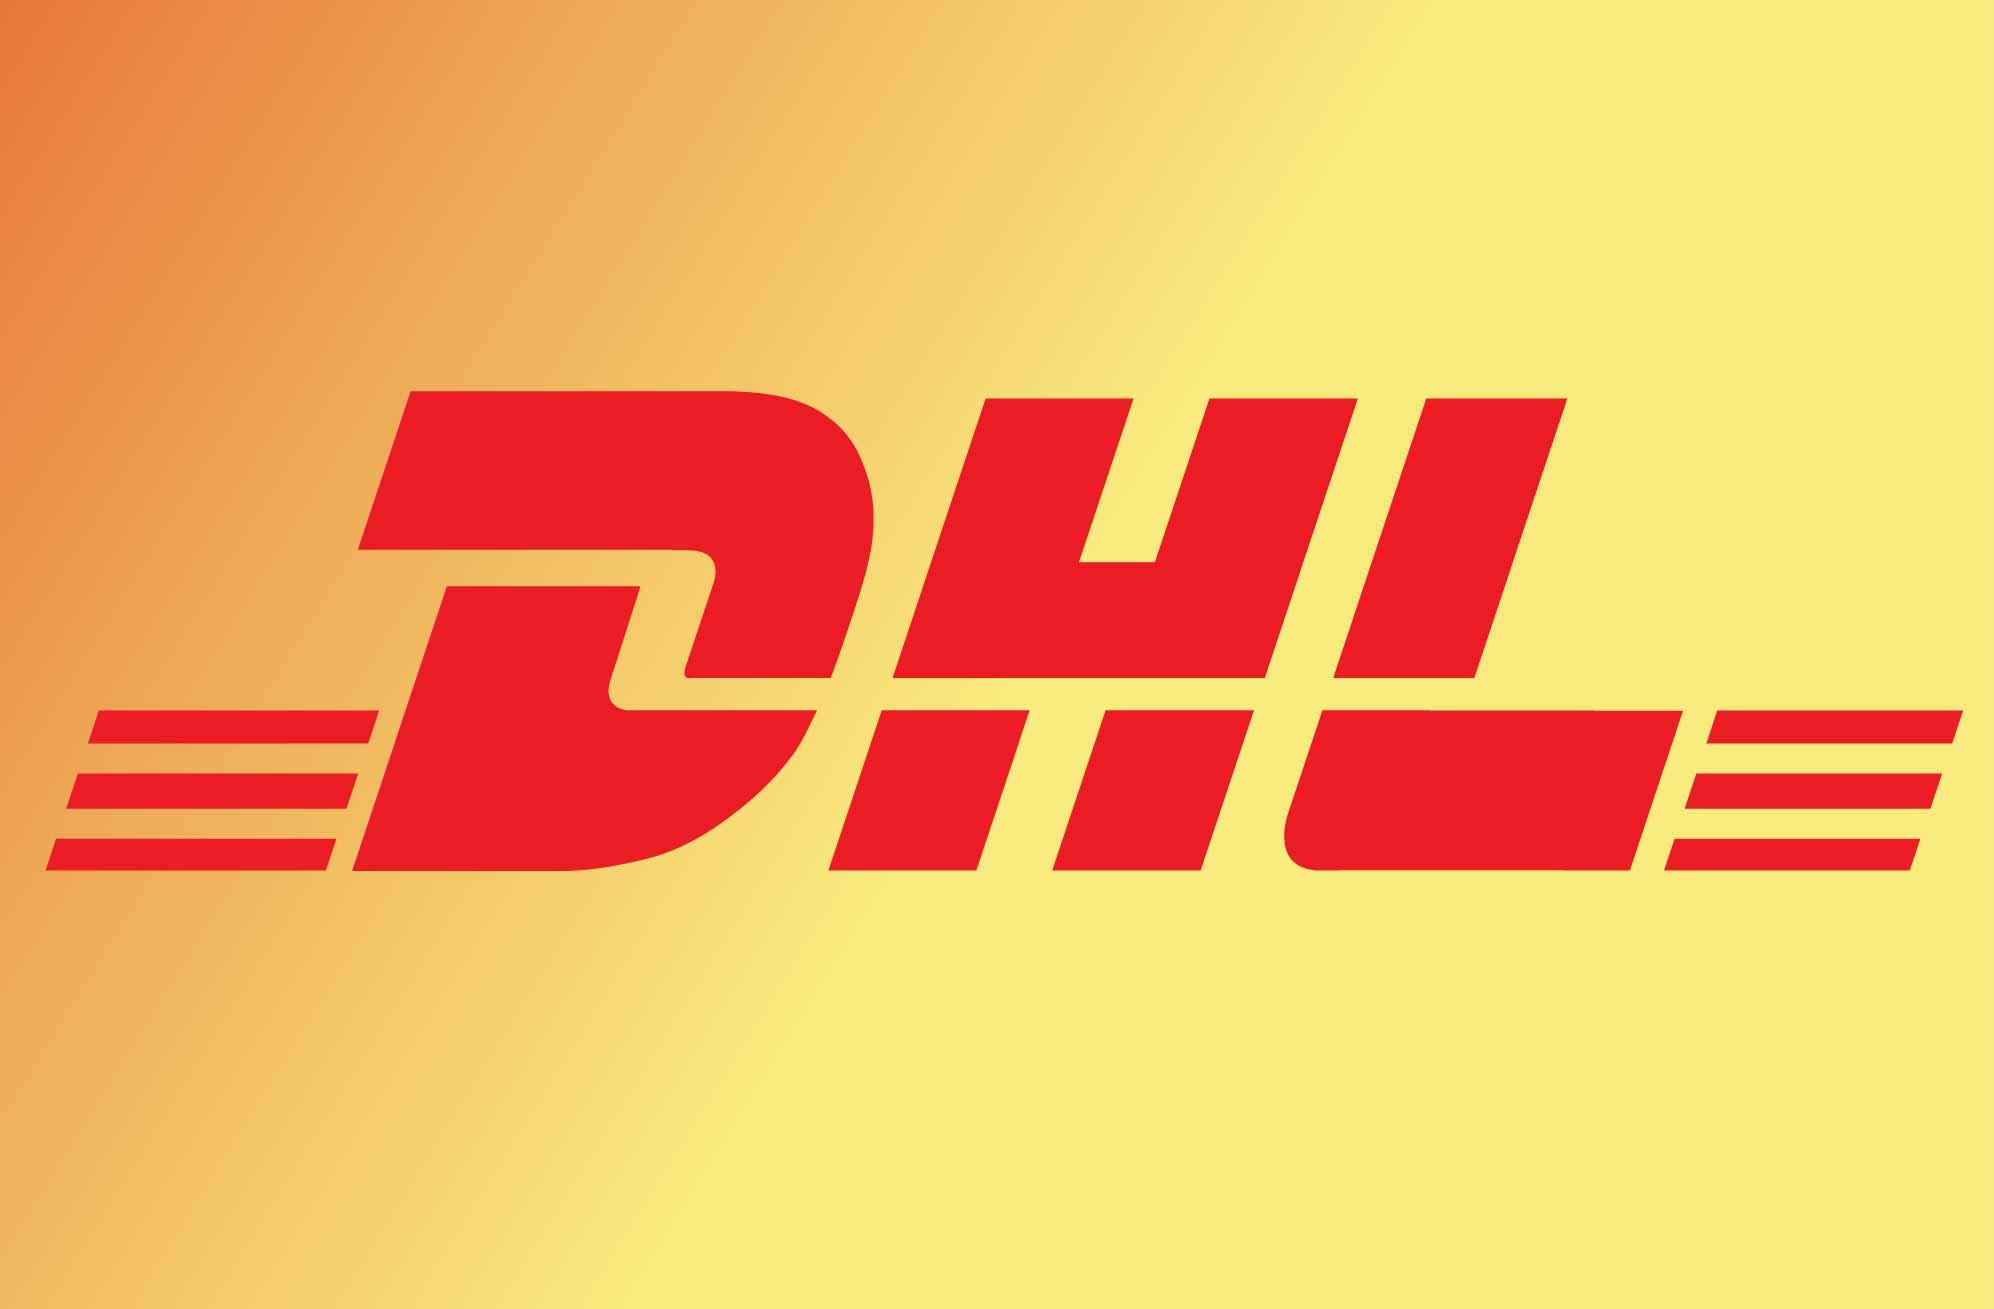 DHL Wallpaper Full HD Pictures Pictureicon 1994x1309